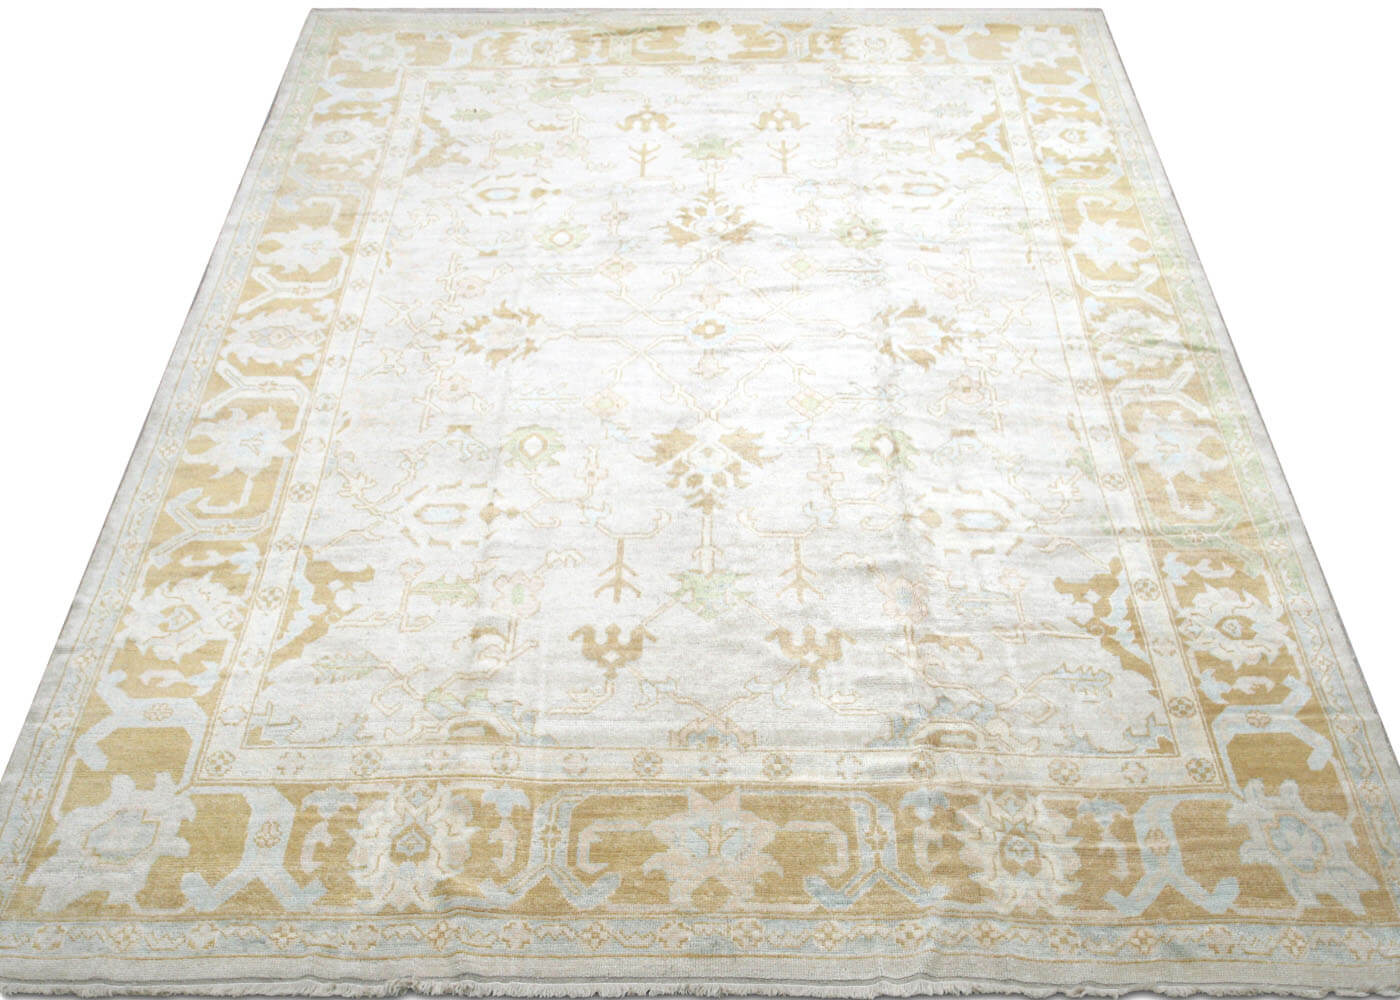 "Recently Woven Turkish Oushak Carpet - 11'7"" x 15'9"""